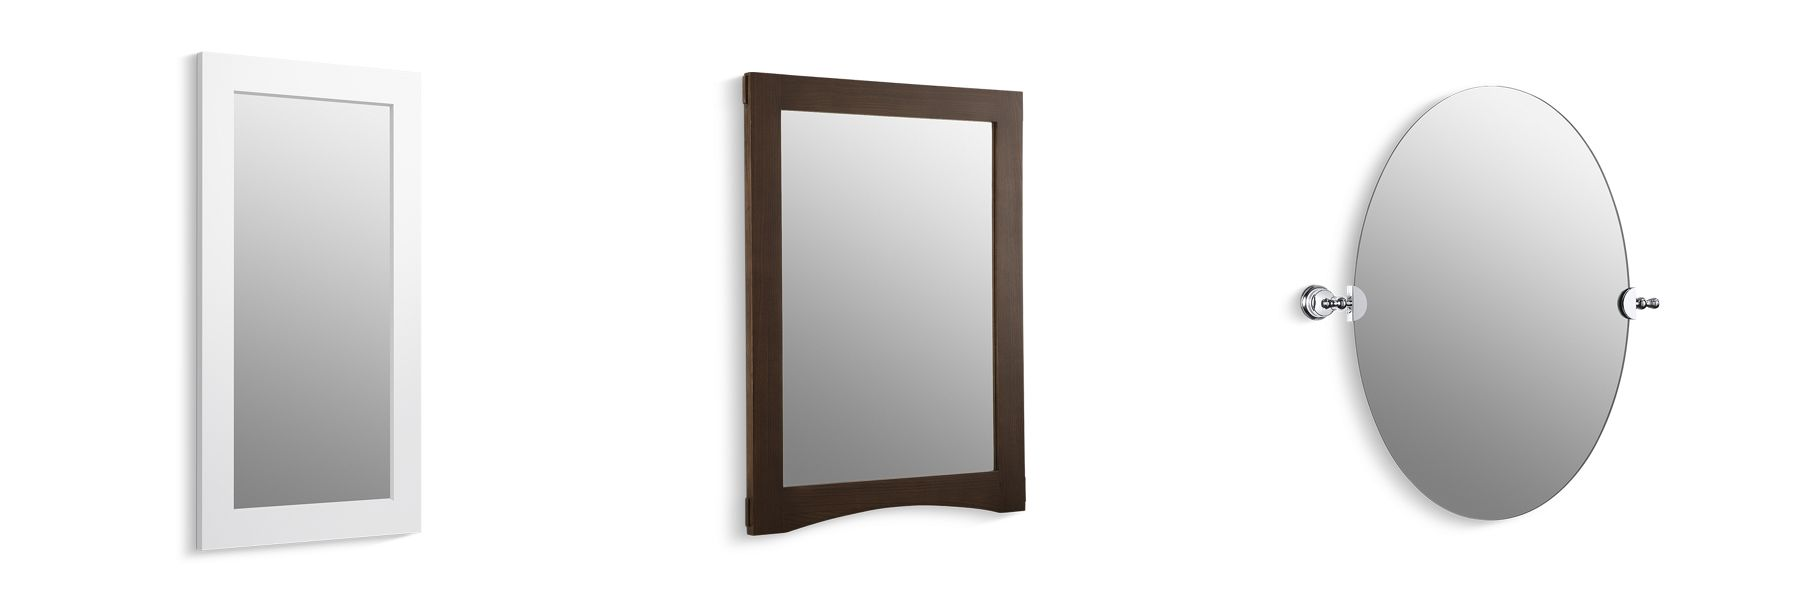 Bathroom Mirrors Kohler medicine cabinets & mirrors guide | bathroom | kohler